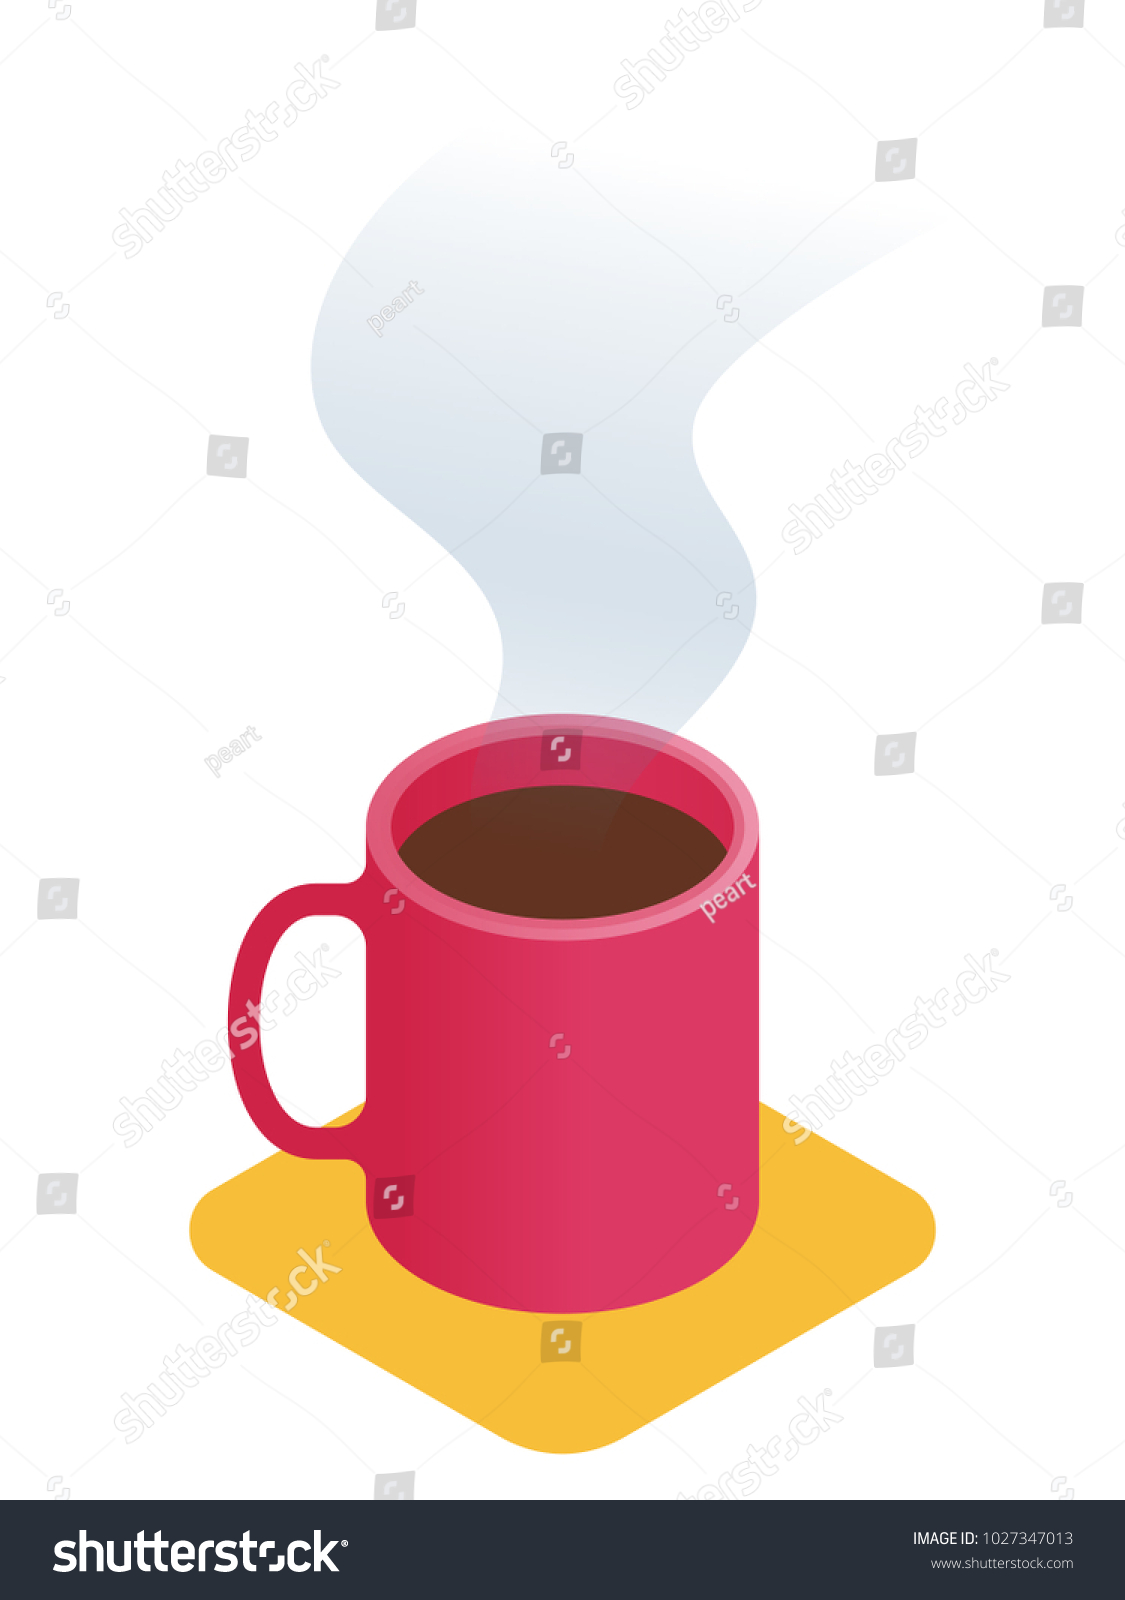 Flat Isometric Illustration Cup Coffee Business Stock Vector ...